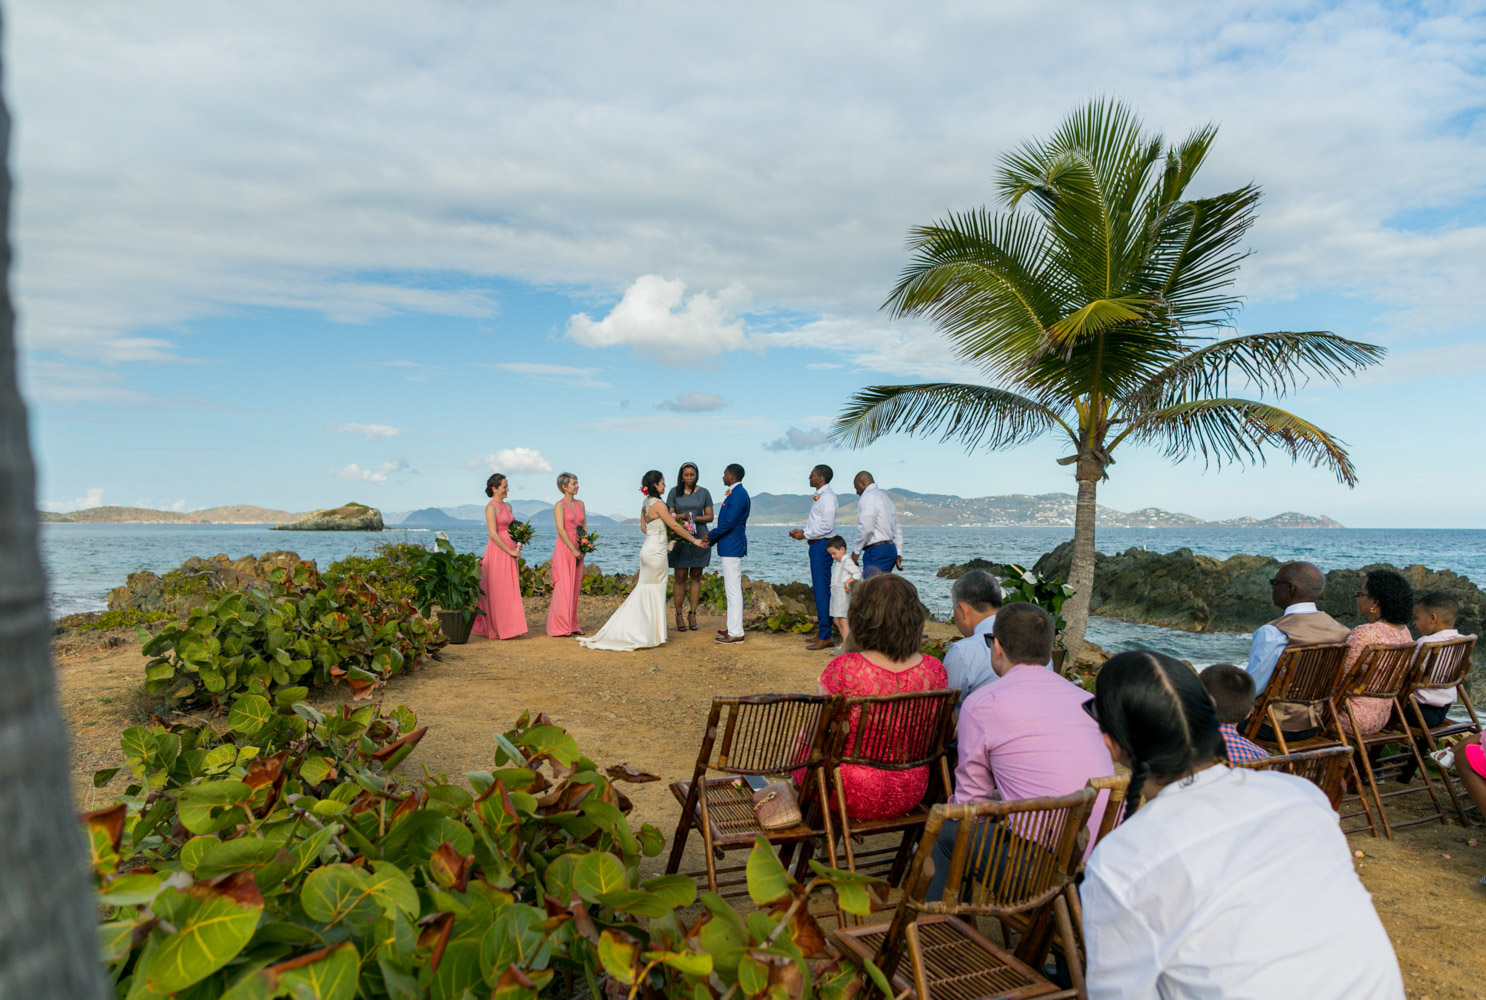 St. Thomas wedding on the beach